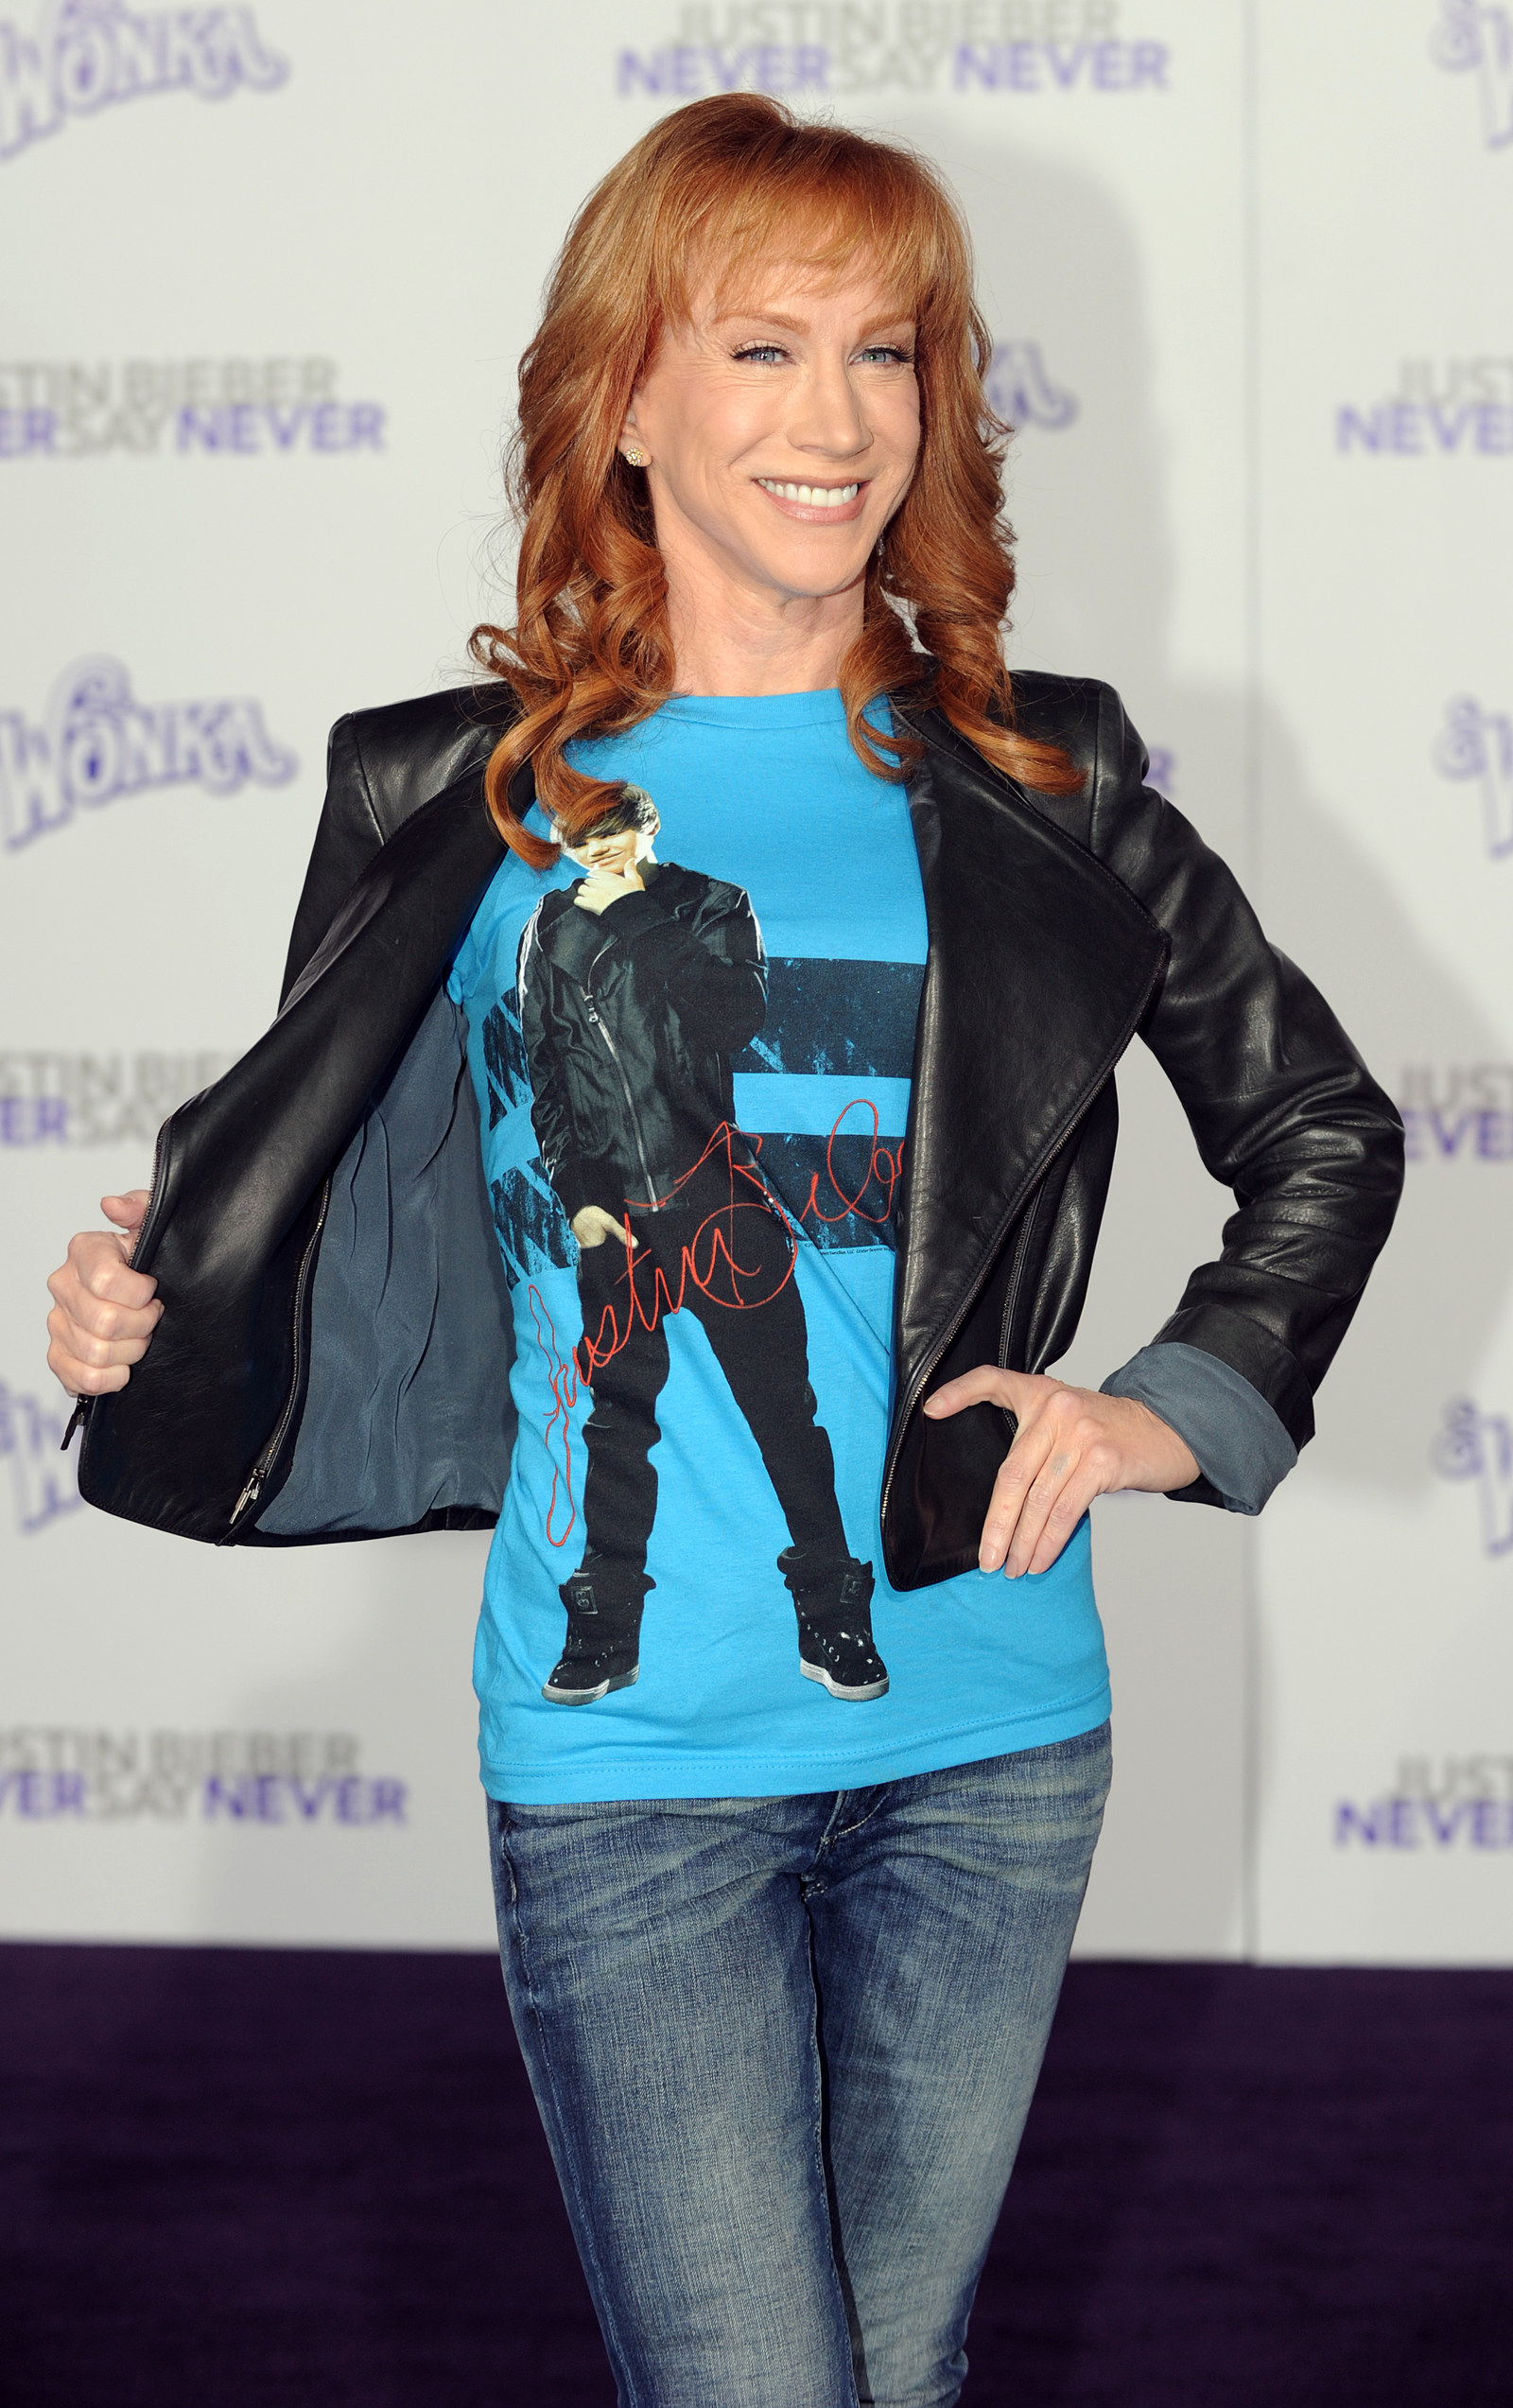 Super fan, Kathy Griffin was in attendance